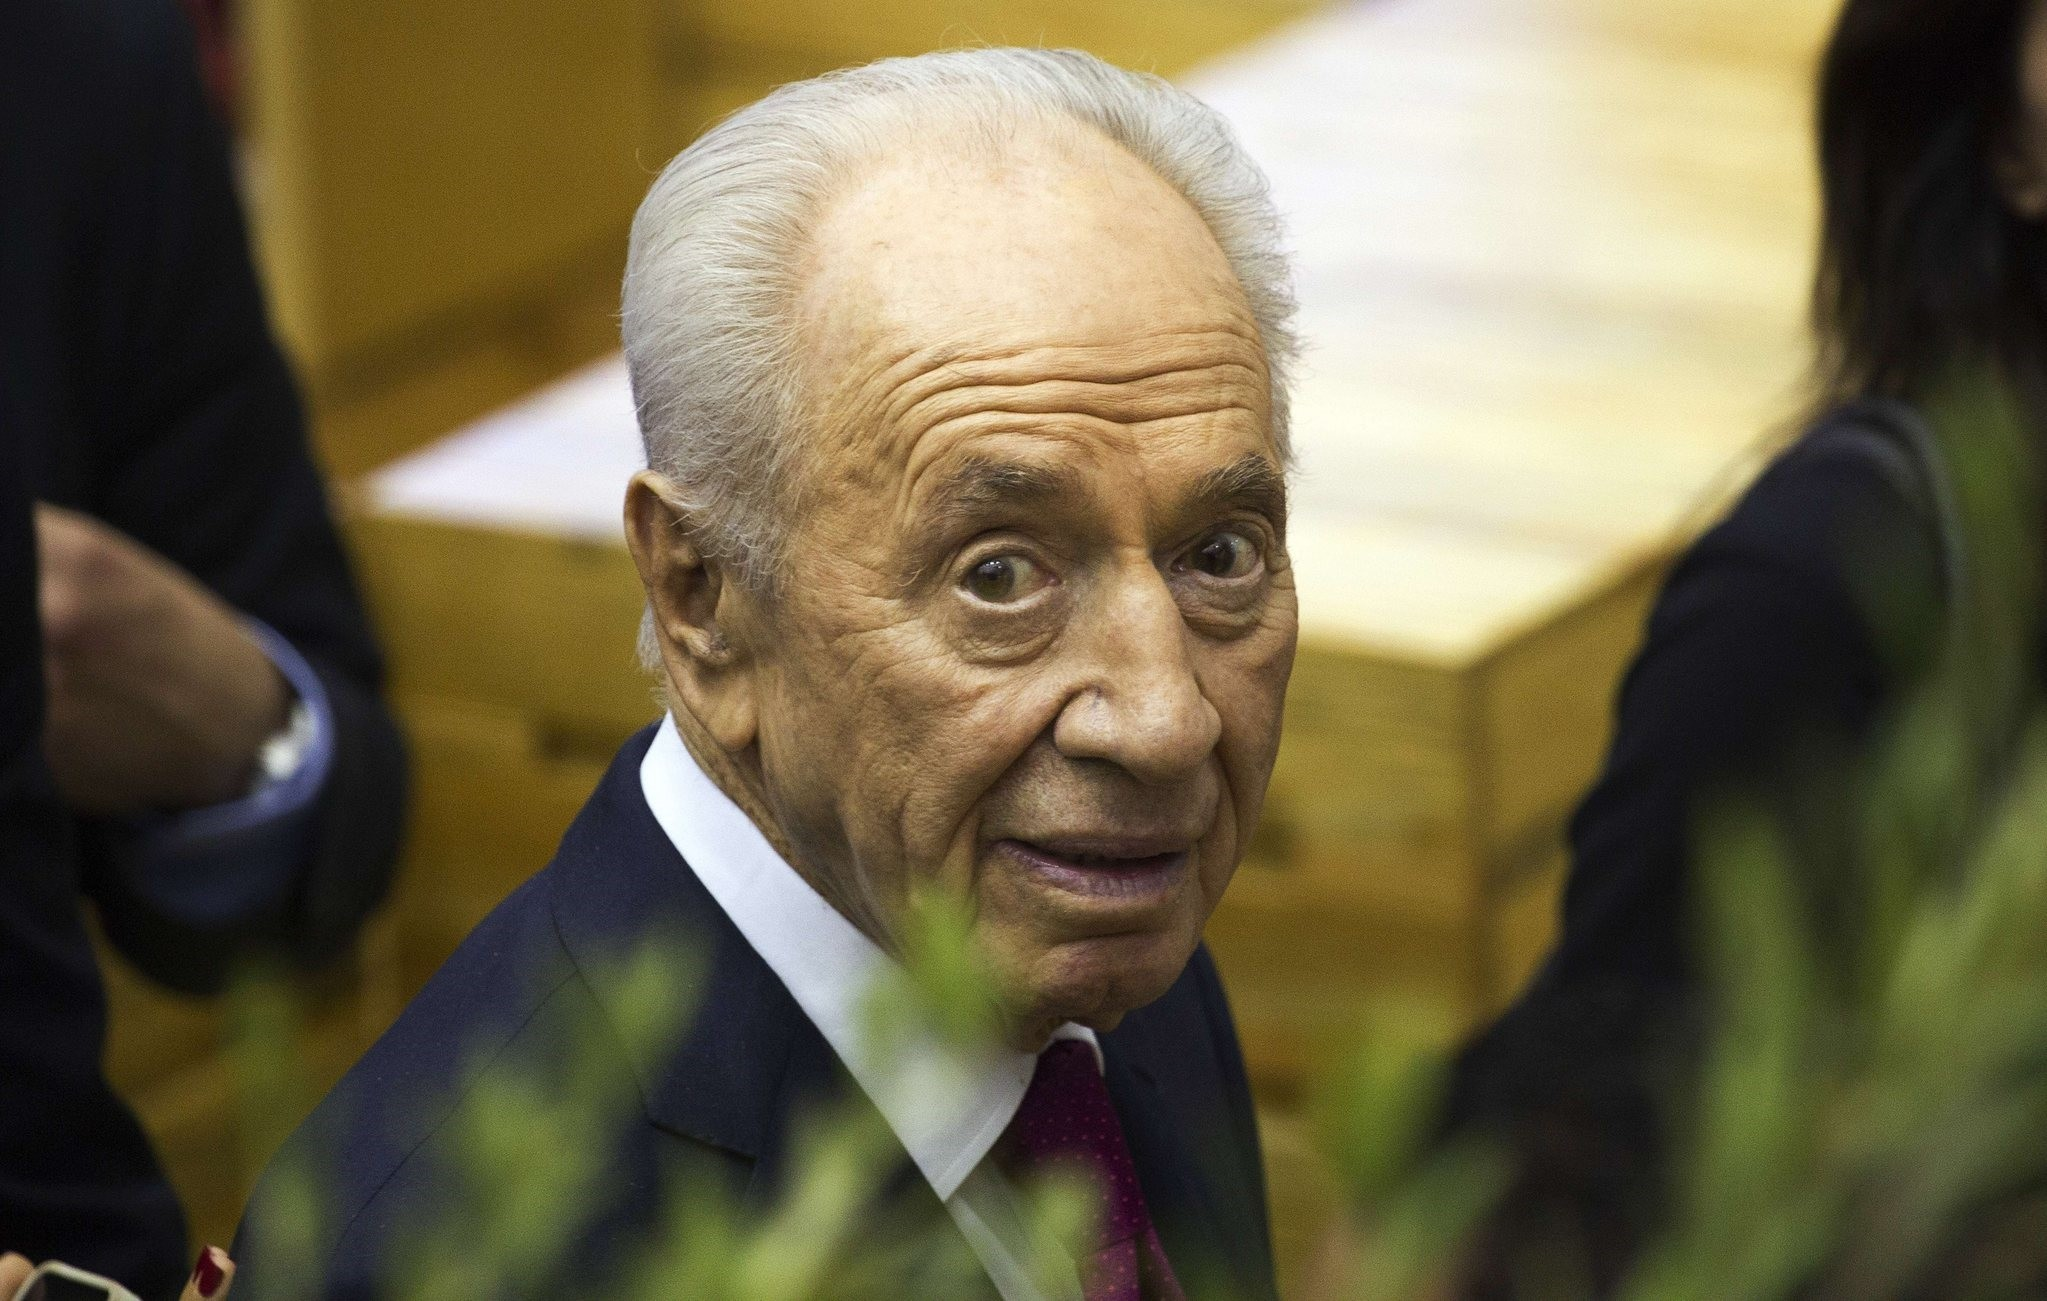 Shimon Peres, President of Israel and Nobel Peace Prize 1994 laureate, arrives at the International Book Fair in Guadalajara, Mexico, on November 30, 2013. (AFP Photo)